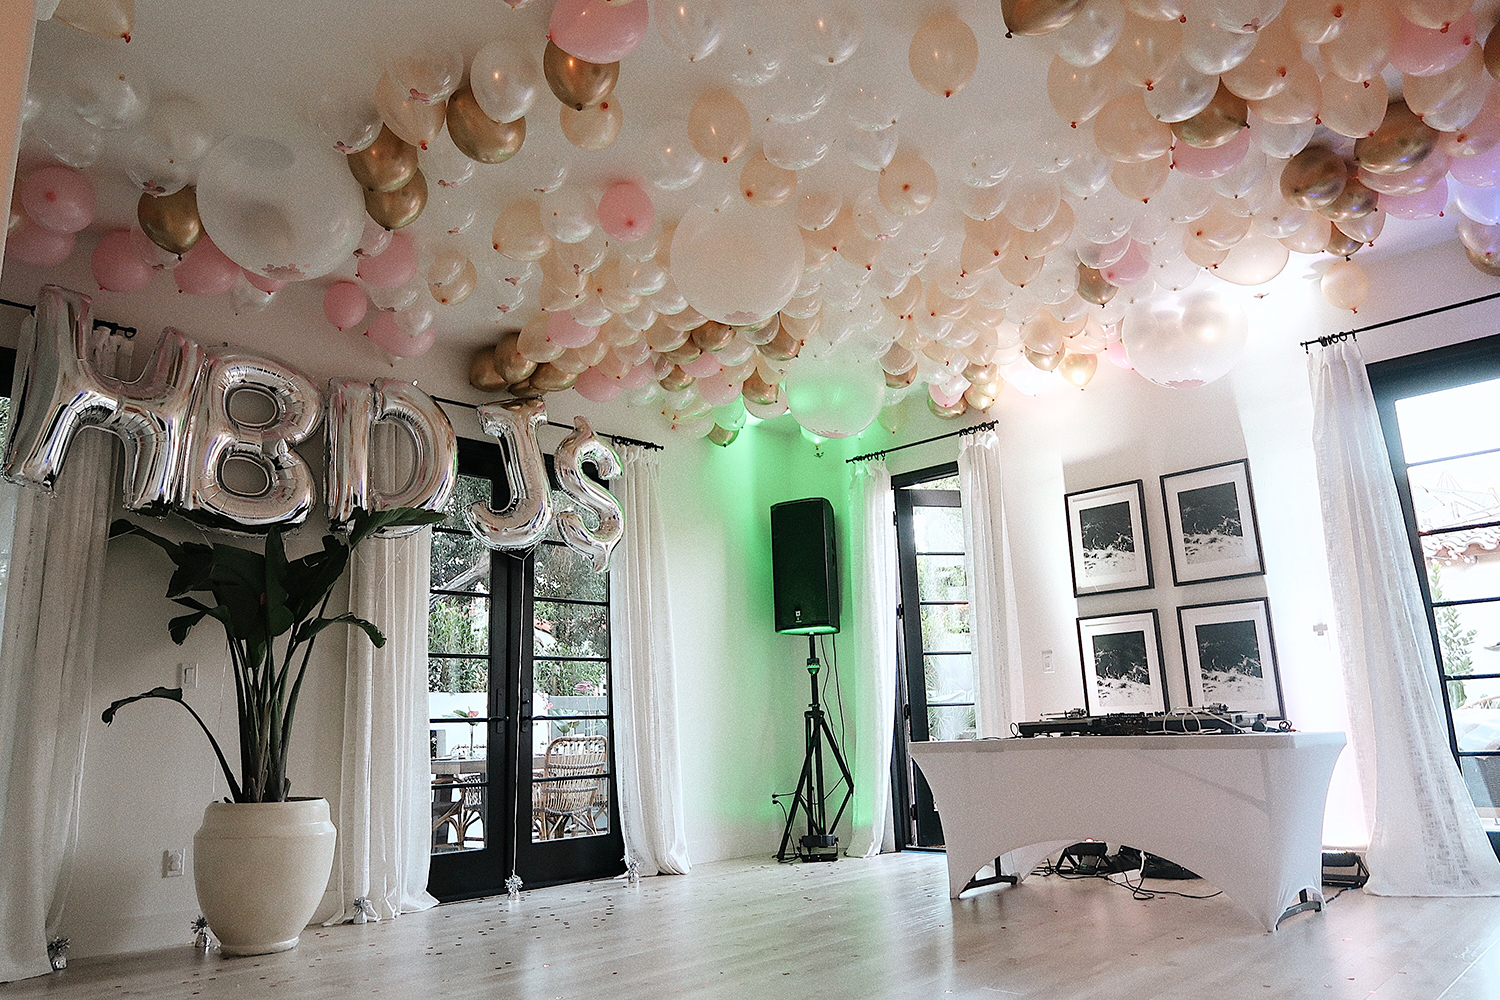 Birthday party DIY balloon decorations